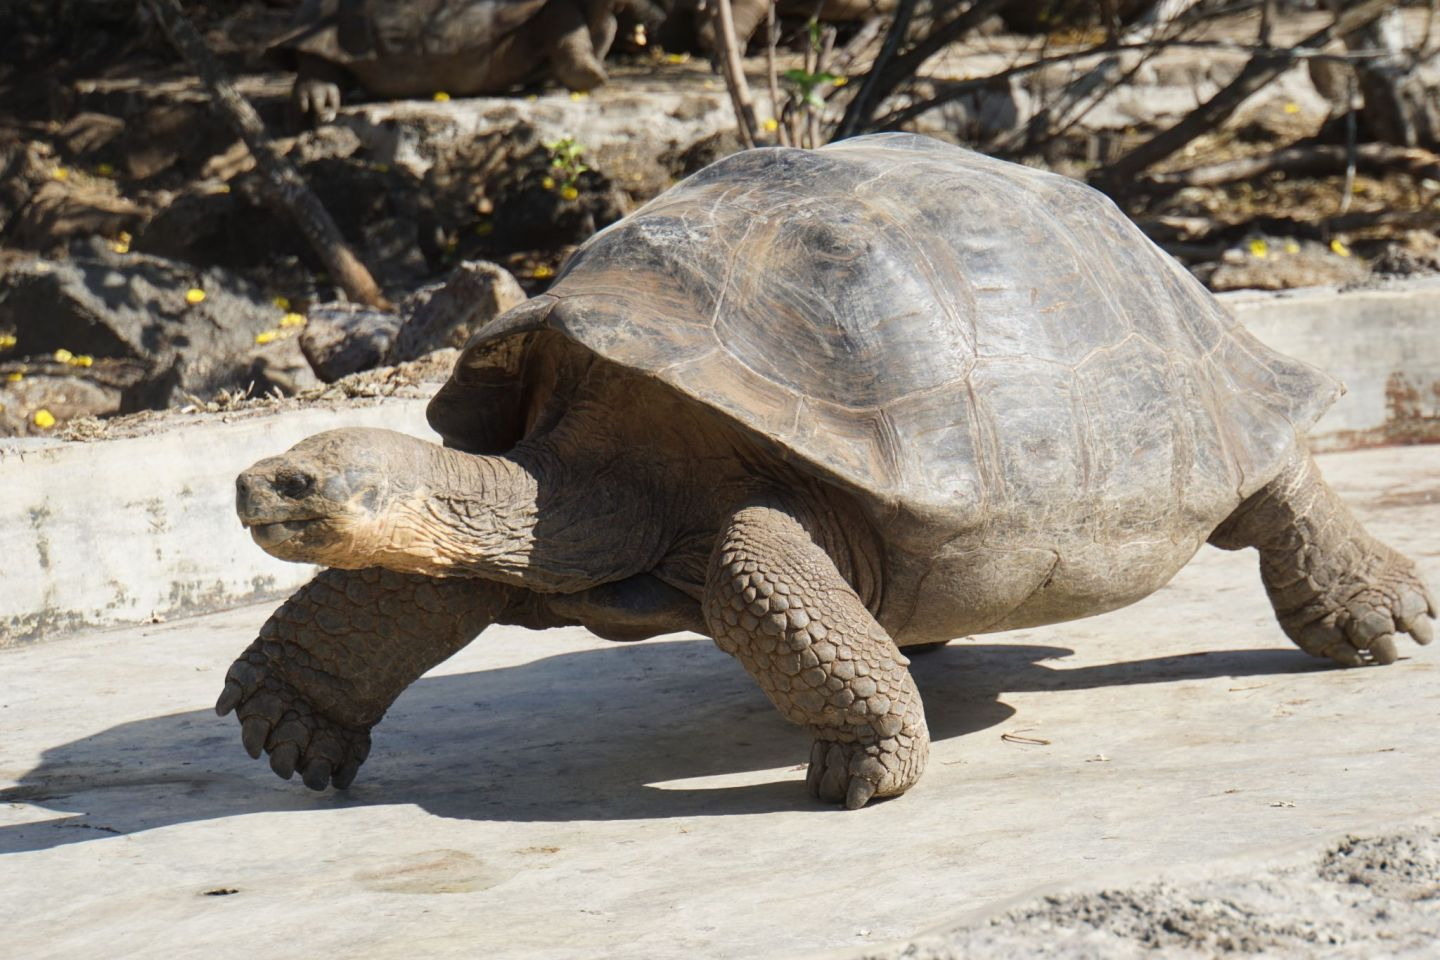 Giant Galápagos tortoise on Santa Cruz